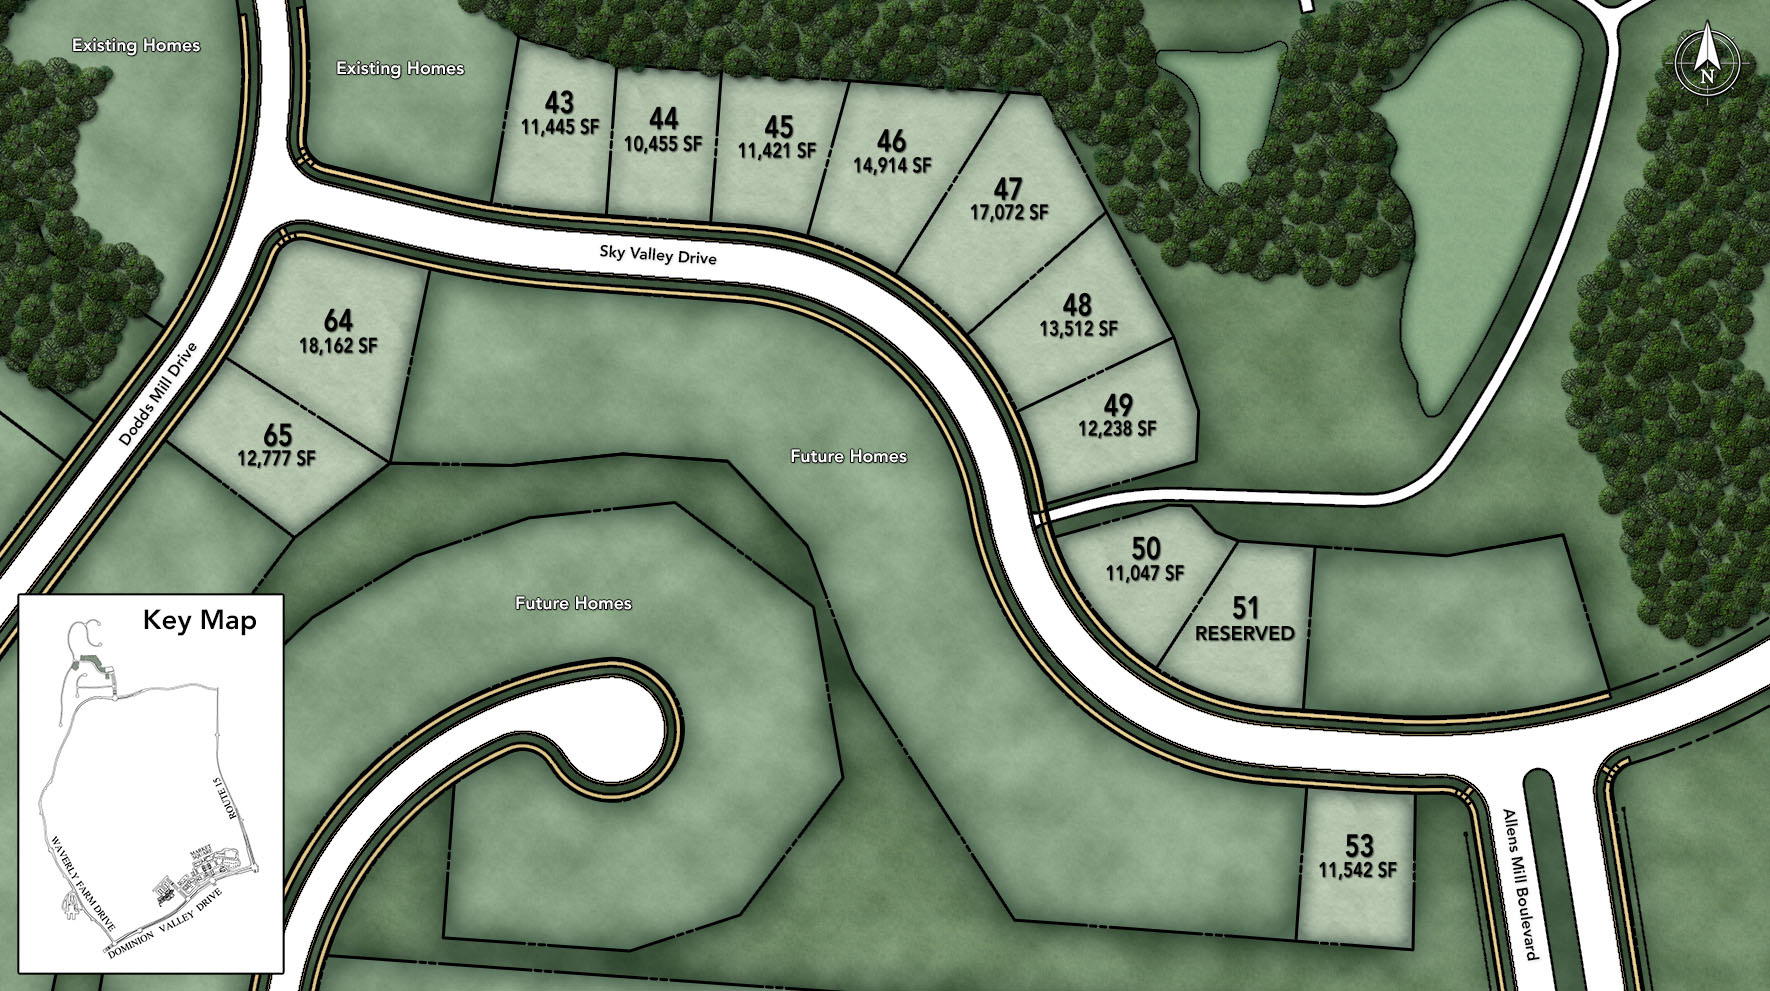 Dominion Valley Country Club - Executives Site Plan II